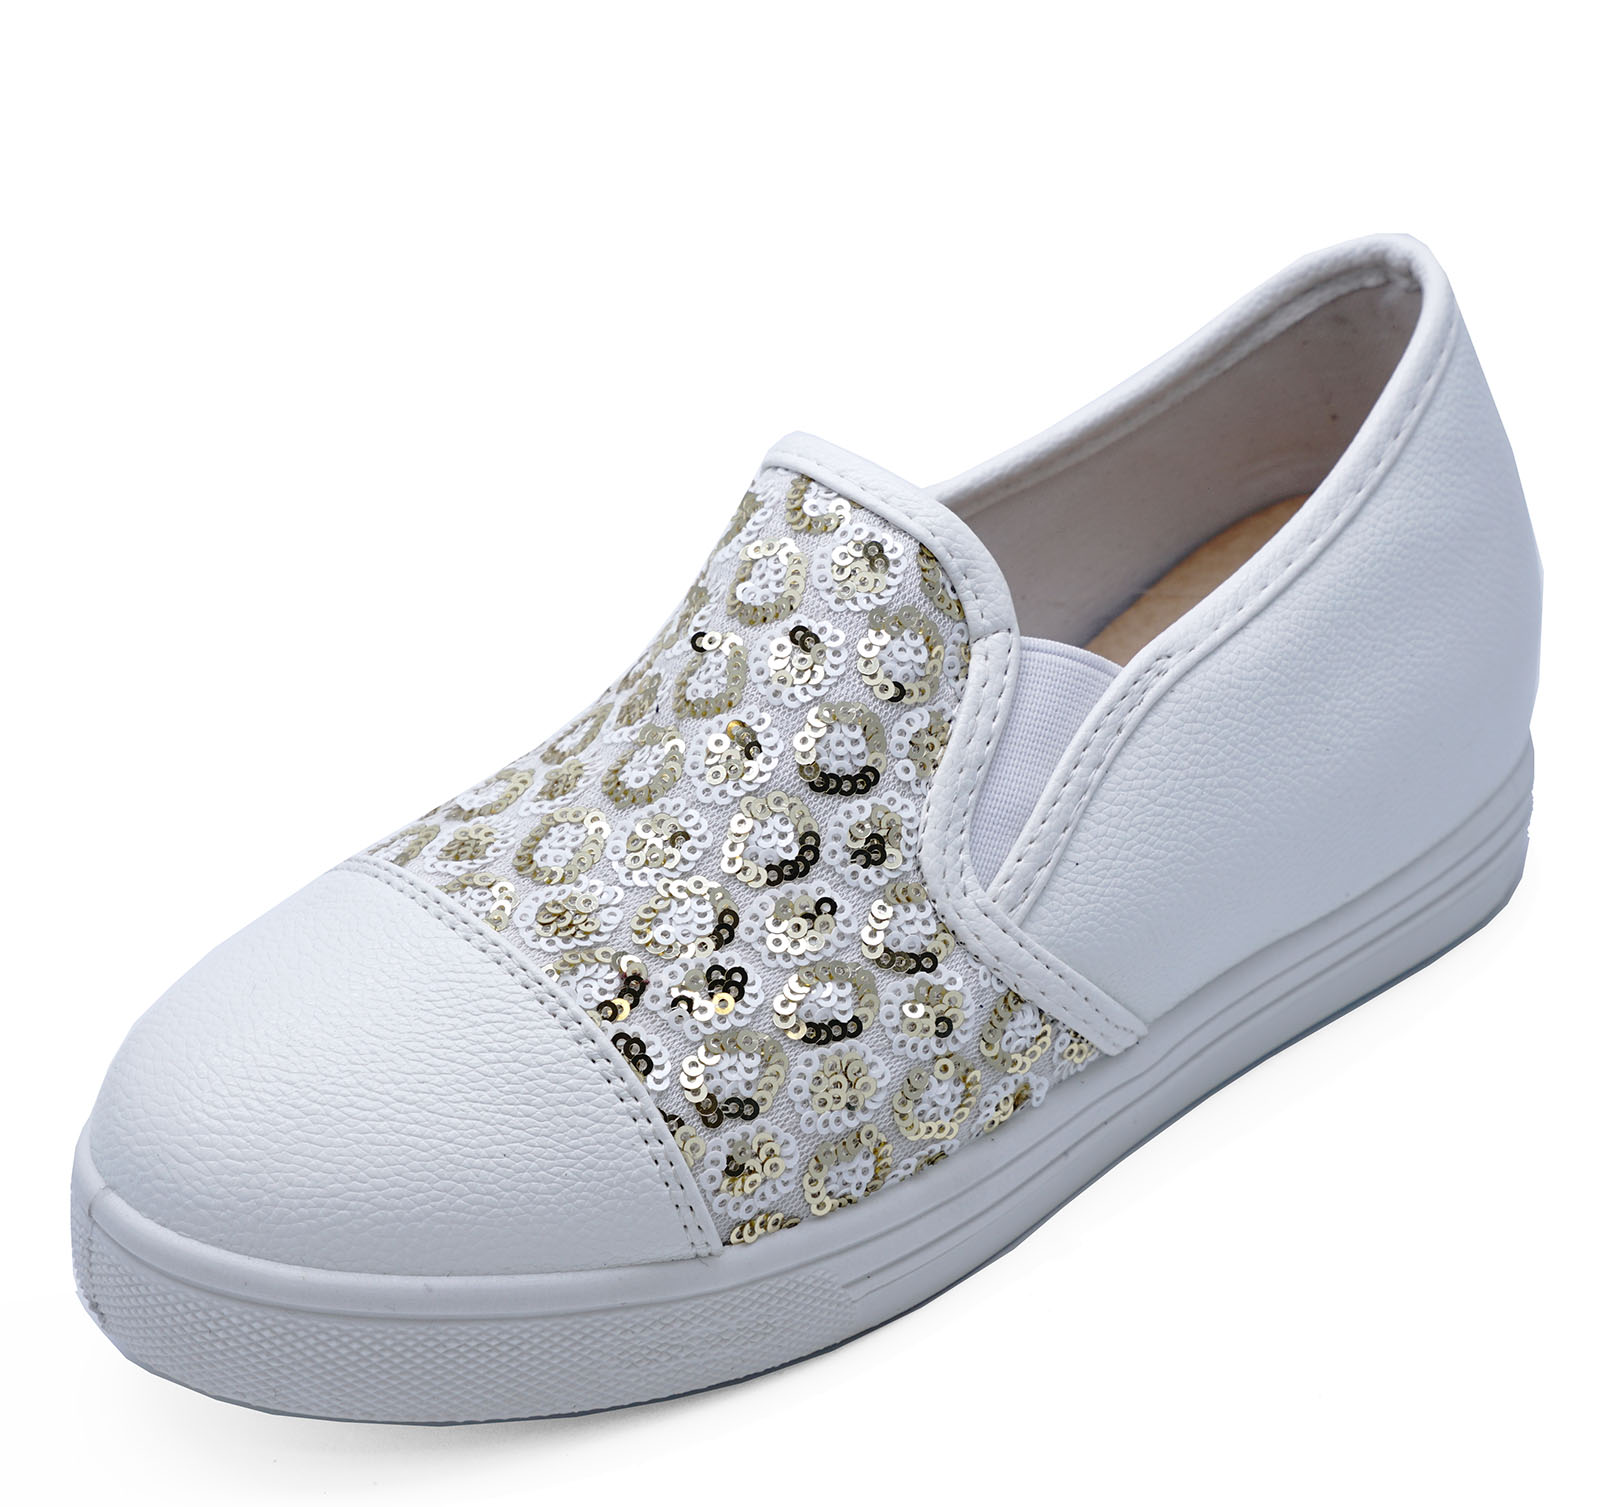 WOMENS WHITE GOLD SEQUIN SLIP-ON COMFY PLIMSOLLS PUMPS CASUAL SHOES ... 48cc7a8bb7